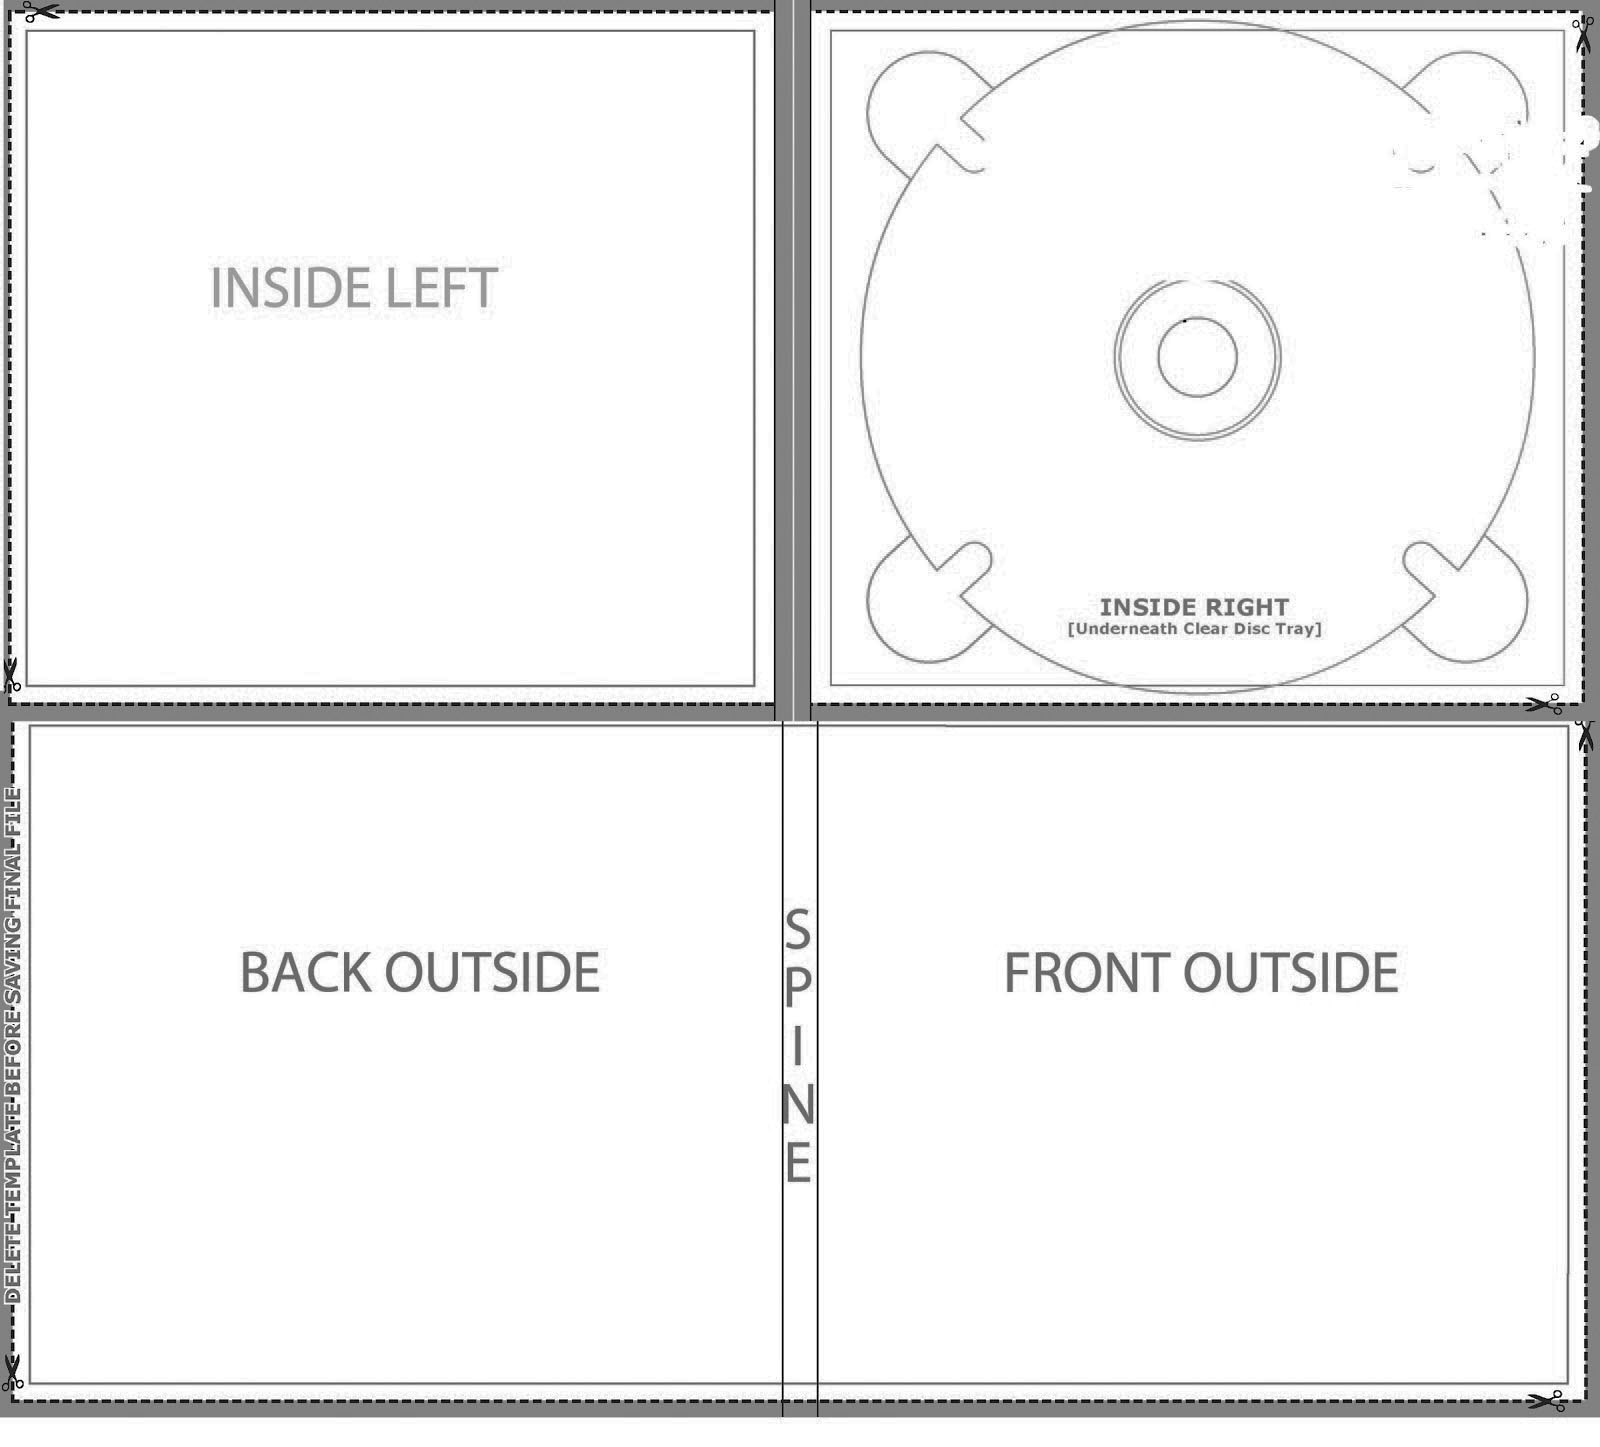 Cd digi case 6 panel template for cd duplication and cd replication.